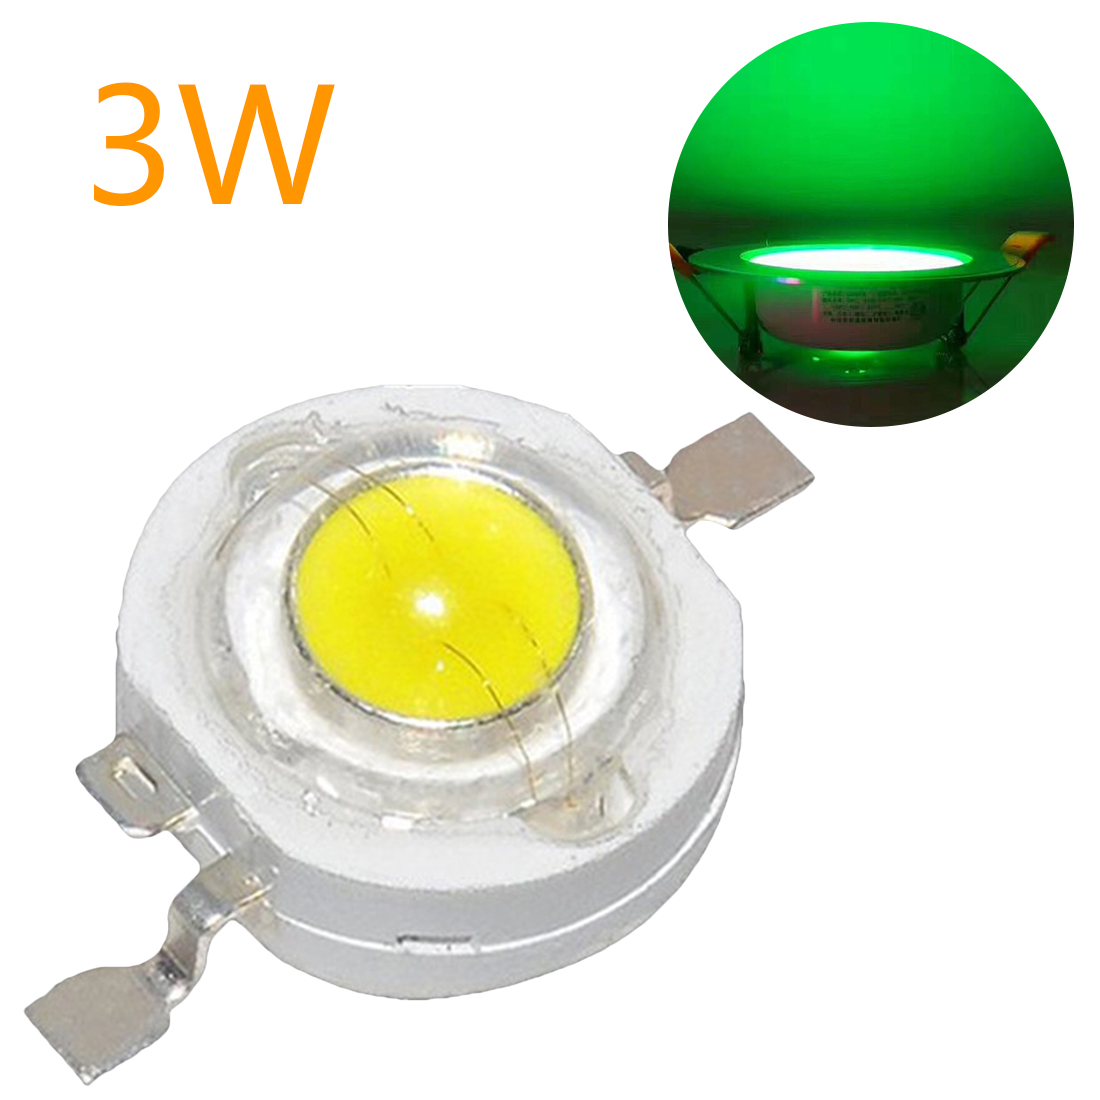 1W-3W Real Full Watt High Power LED Lamp Bulb Diodes SMD 110-120LM LEDs Chip For 3W - 18W Spot Light Downlight high quality bike frame mtb authentic mosso 619xc aluminium alloy mountain bike 26 16 17 18 inch frame free shipping